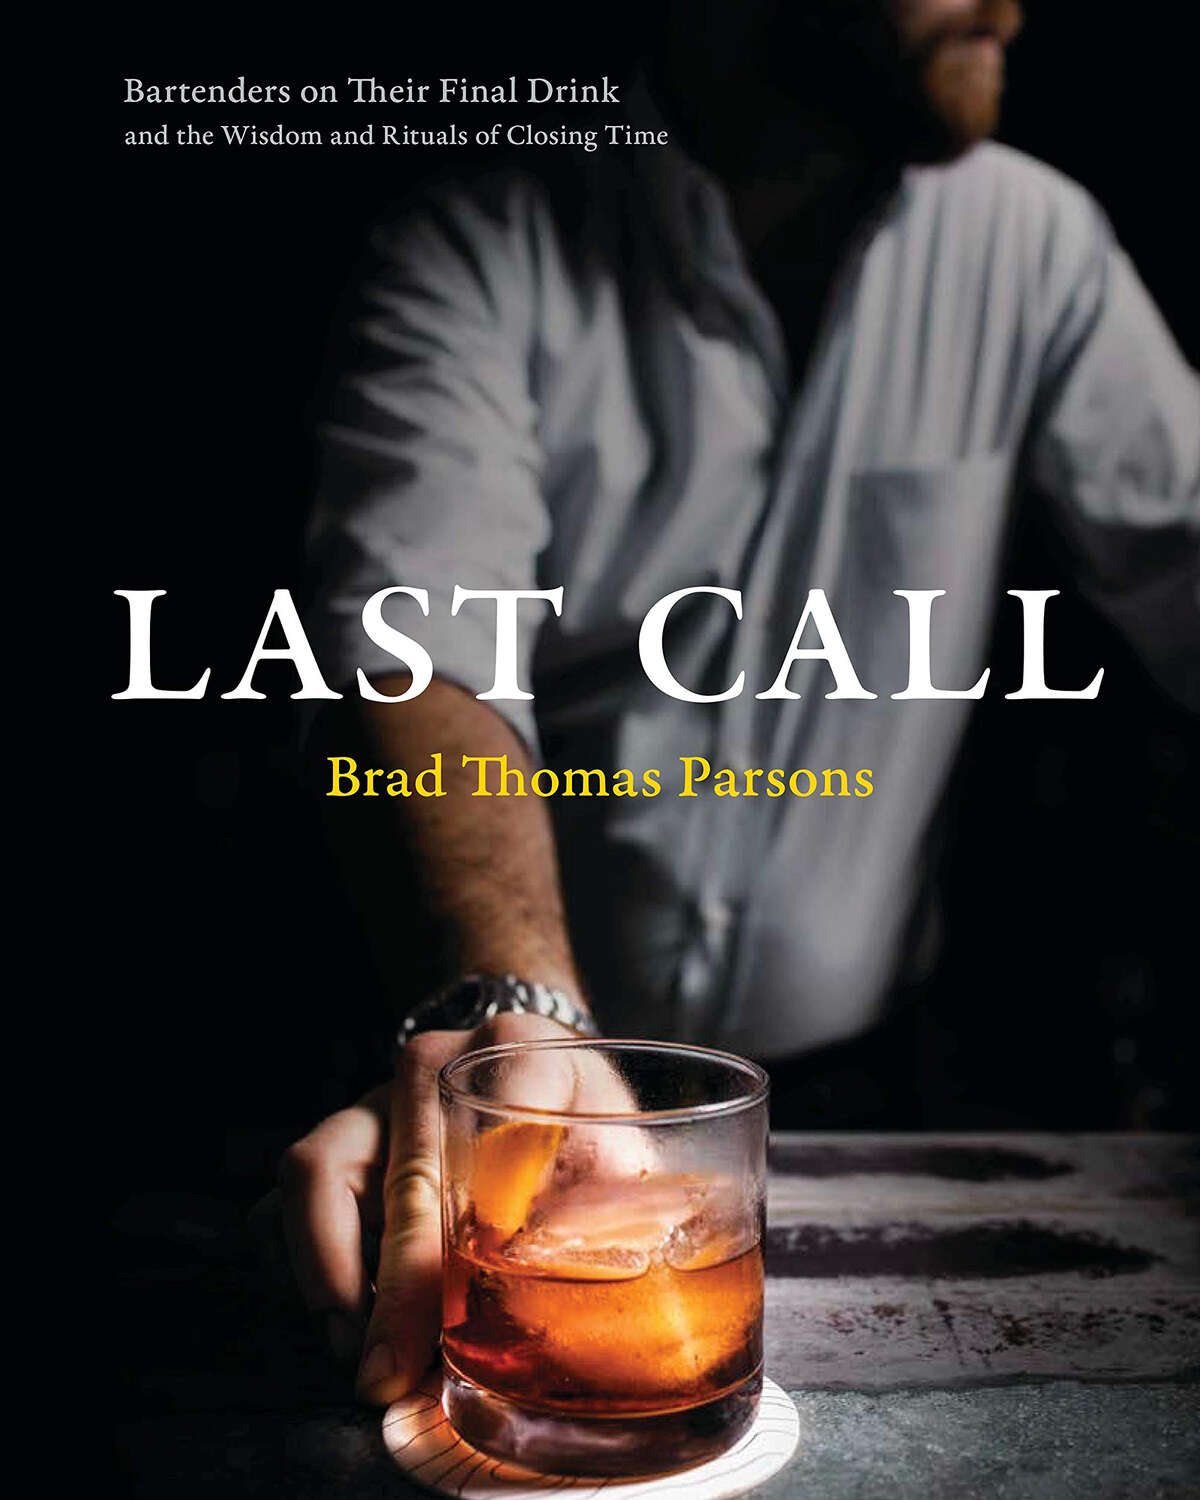 """James Beard award winning spirits author Brad Thomas Parsons experienced an existential crisis after a revelrous night at a favorite local bar. Parsons and photographer Ed Anderson visited more than 80 bars and bartenders across the country, posing the question, """"What is the last thing you'd want to drink before you die?"""" Illuminating answers and shadowed portraits reveal far more than final drinks. -- Louisa Chu (Courtesy Amazon/TNS)"""